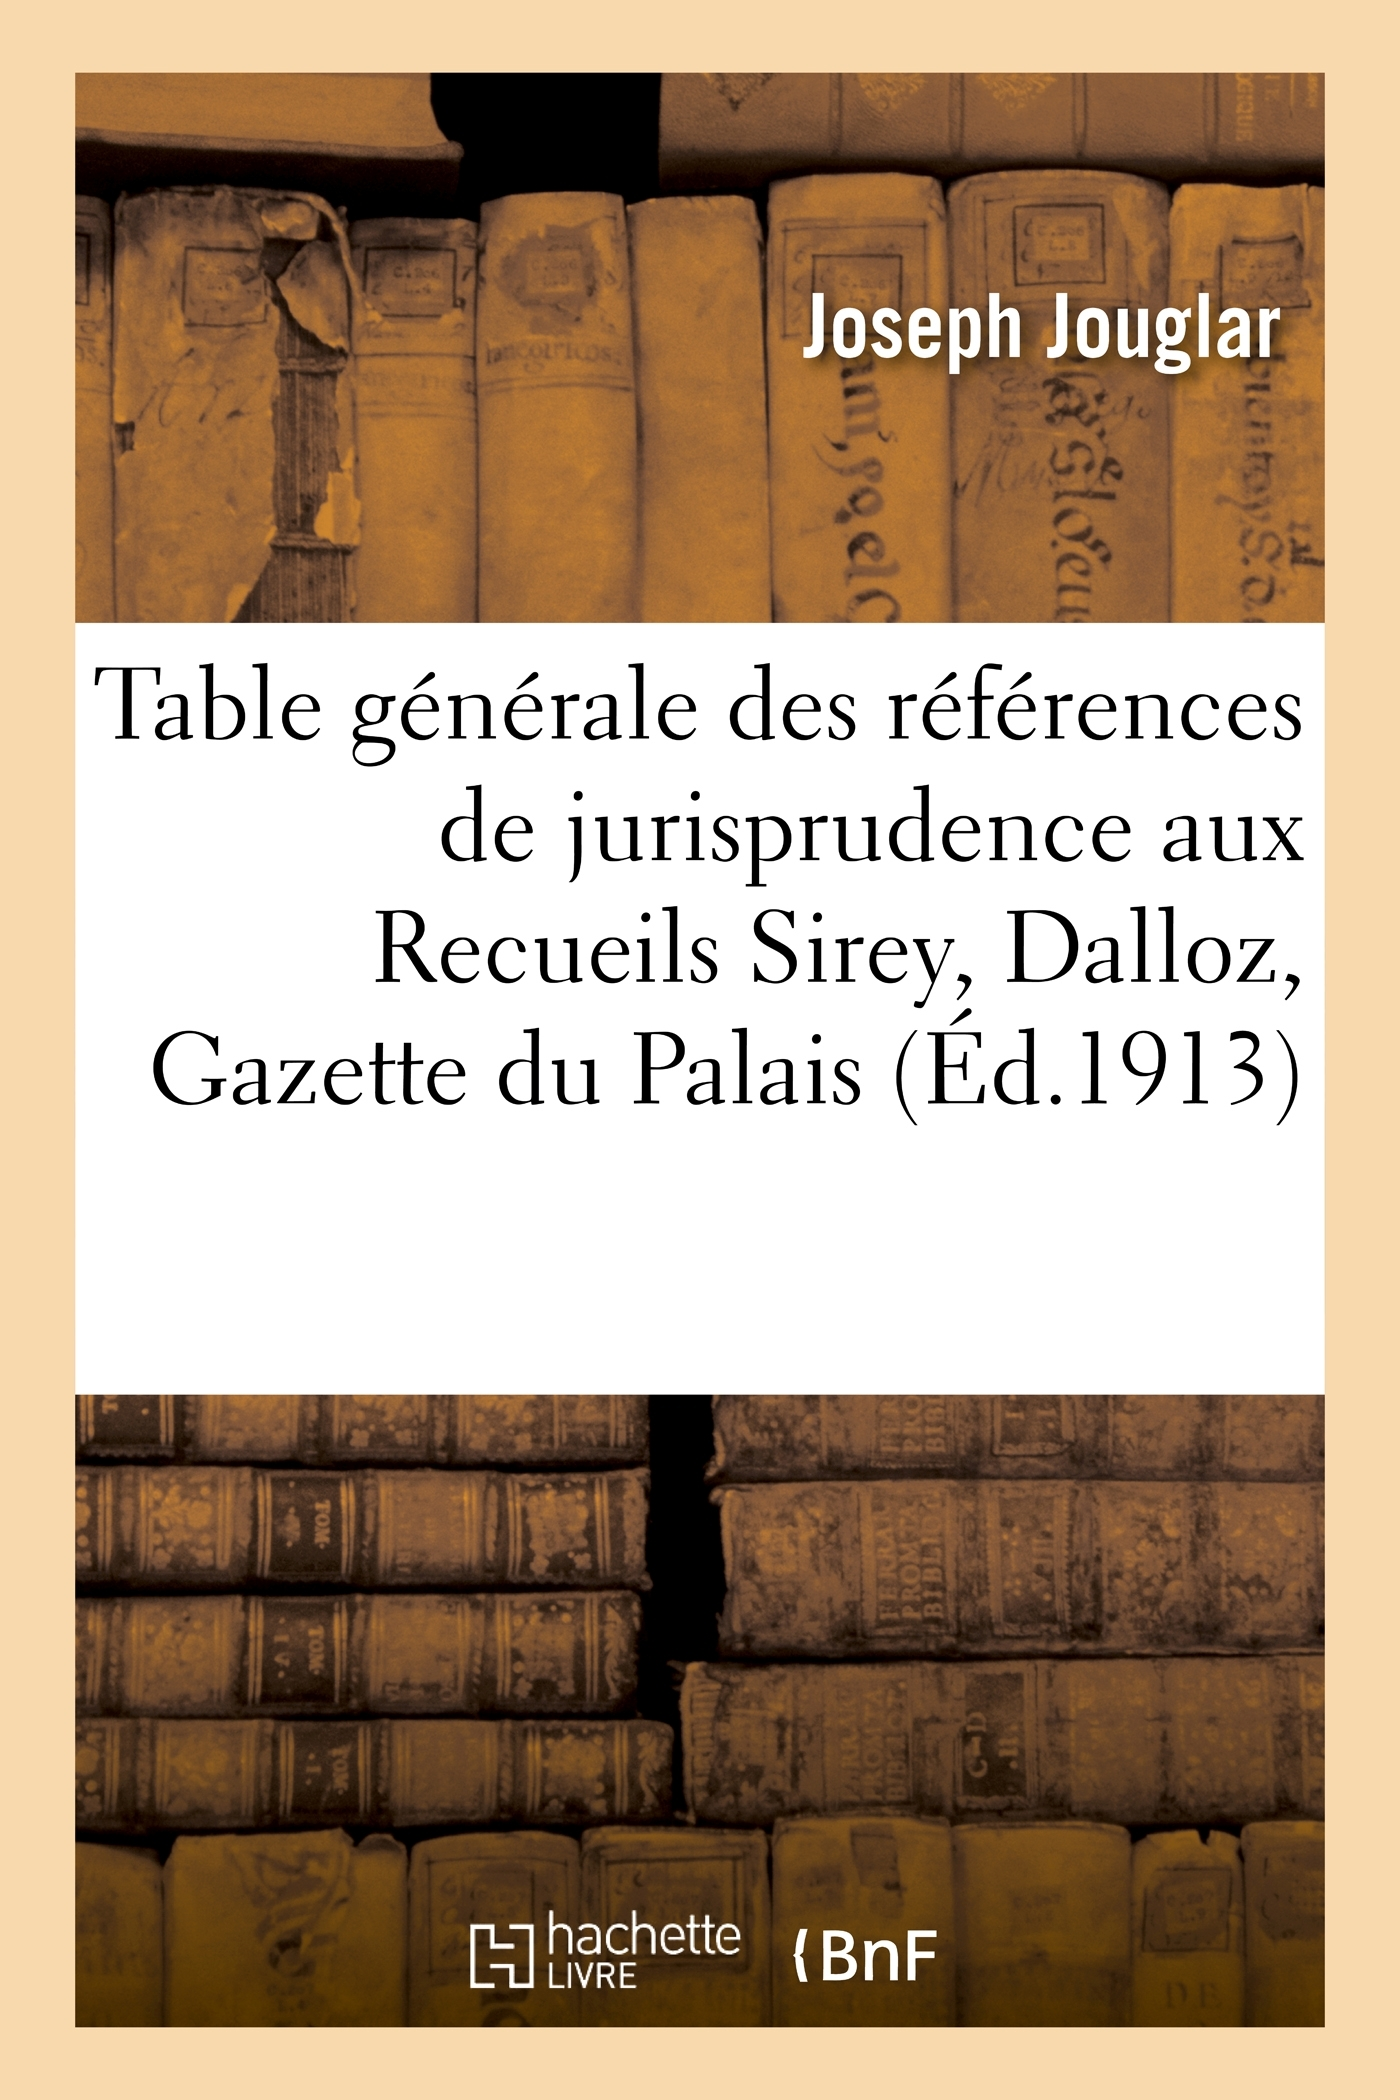 TABLE GENERALE DES REFERENCES DE JURISPRUDENCE AUX RECUEILS SIREY, DALLOZ, GAZETTE DU PALAIS